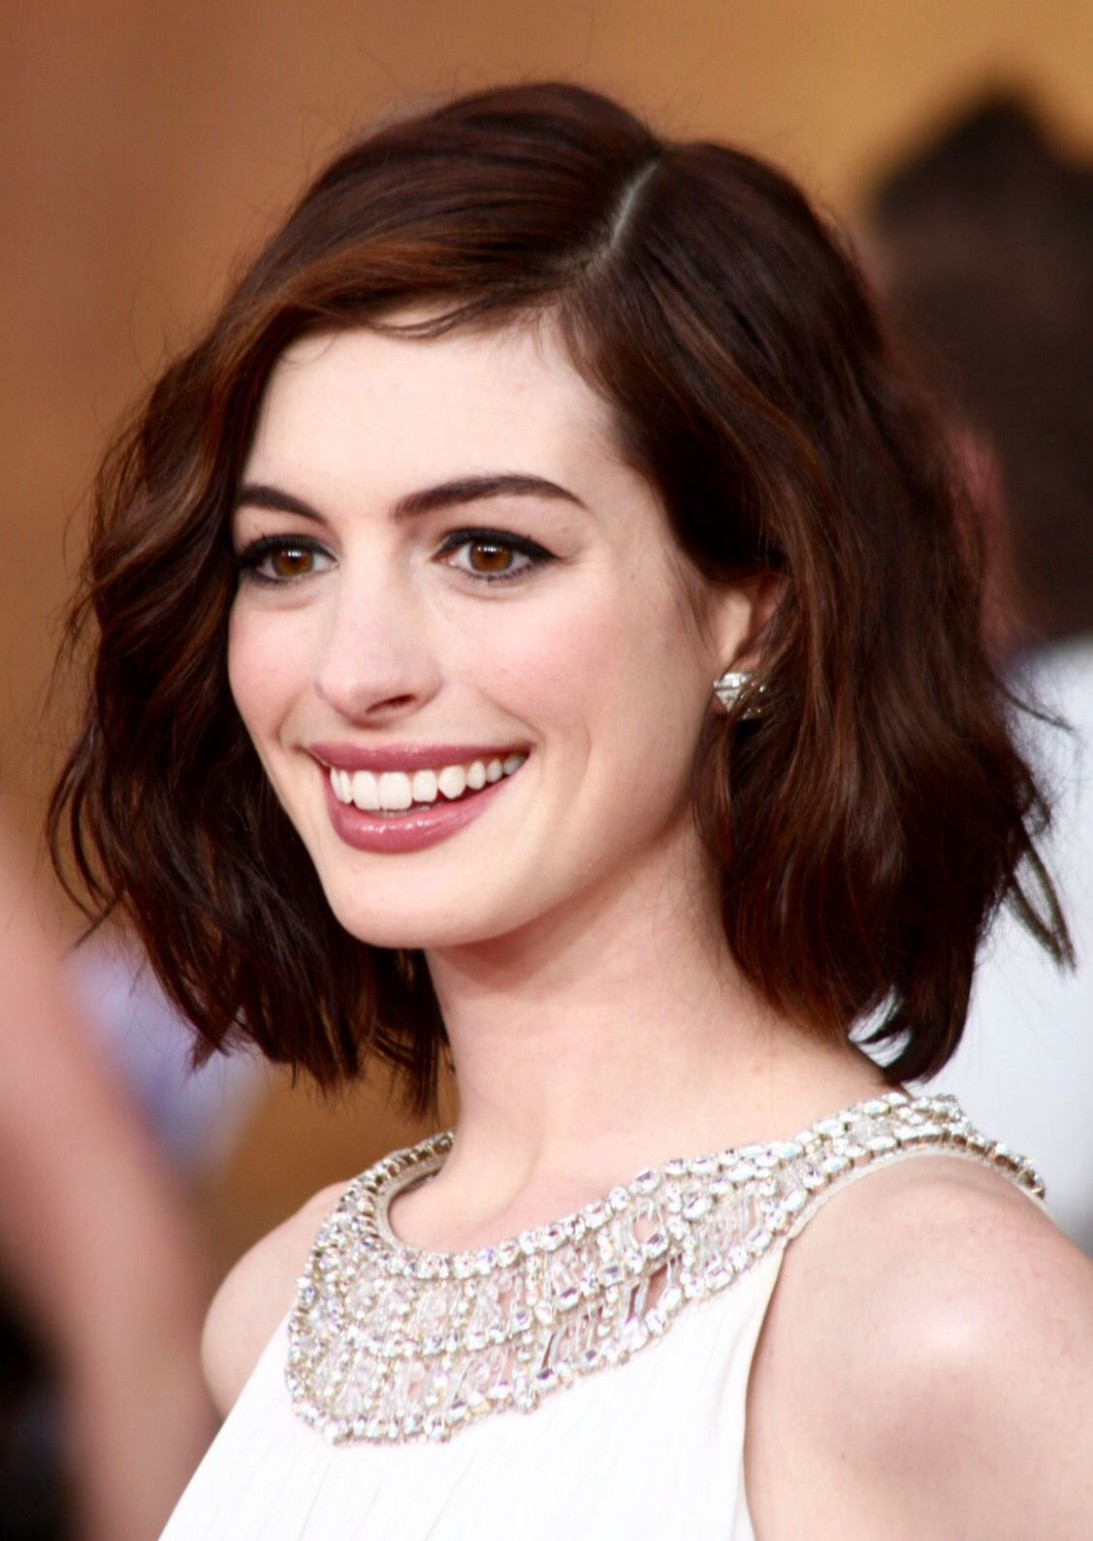 Short Hairstyle For Small Forehead Short Hair Styles, Hair Short Forehead Hairstyles